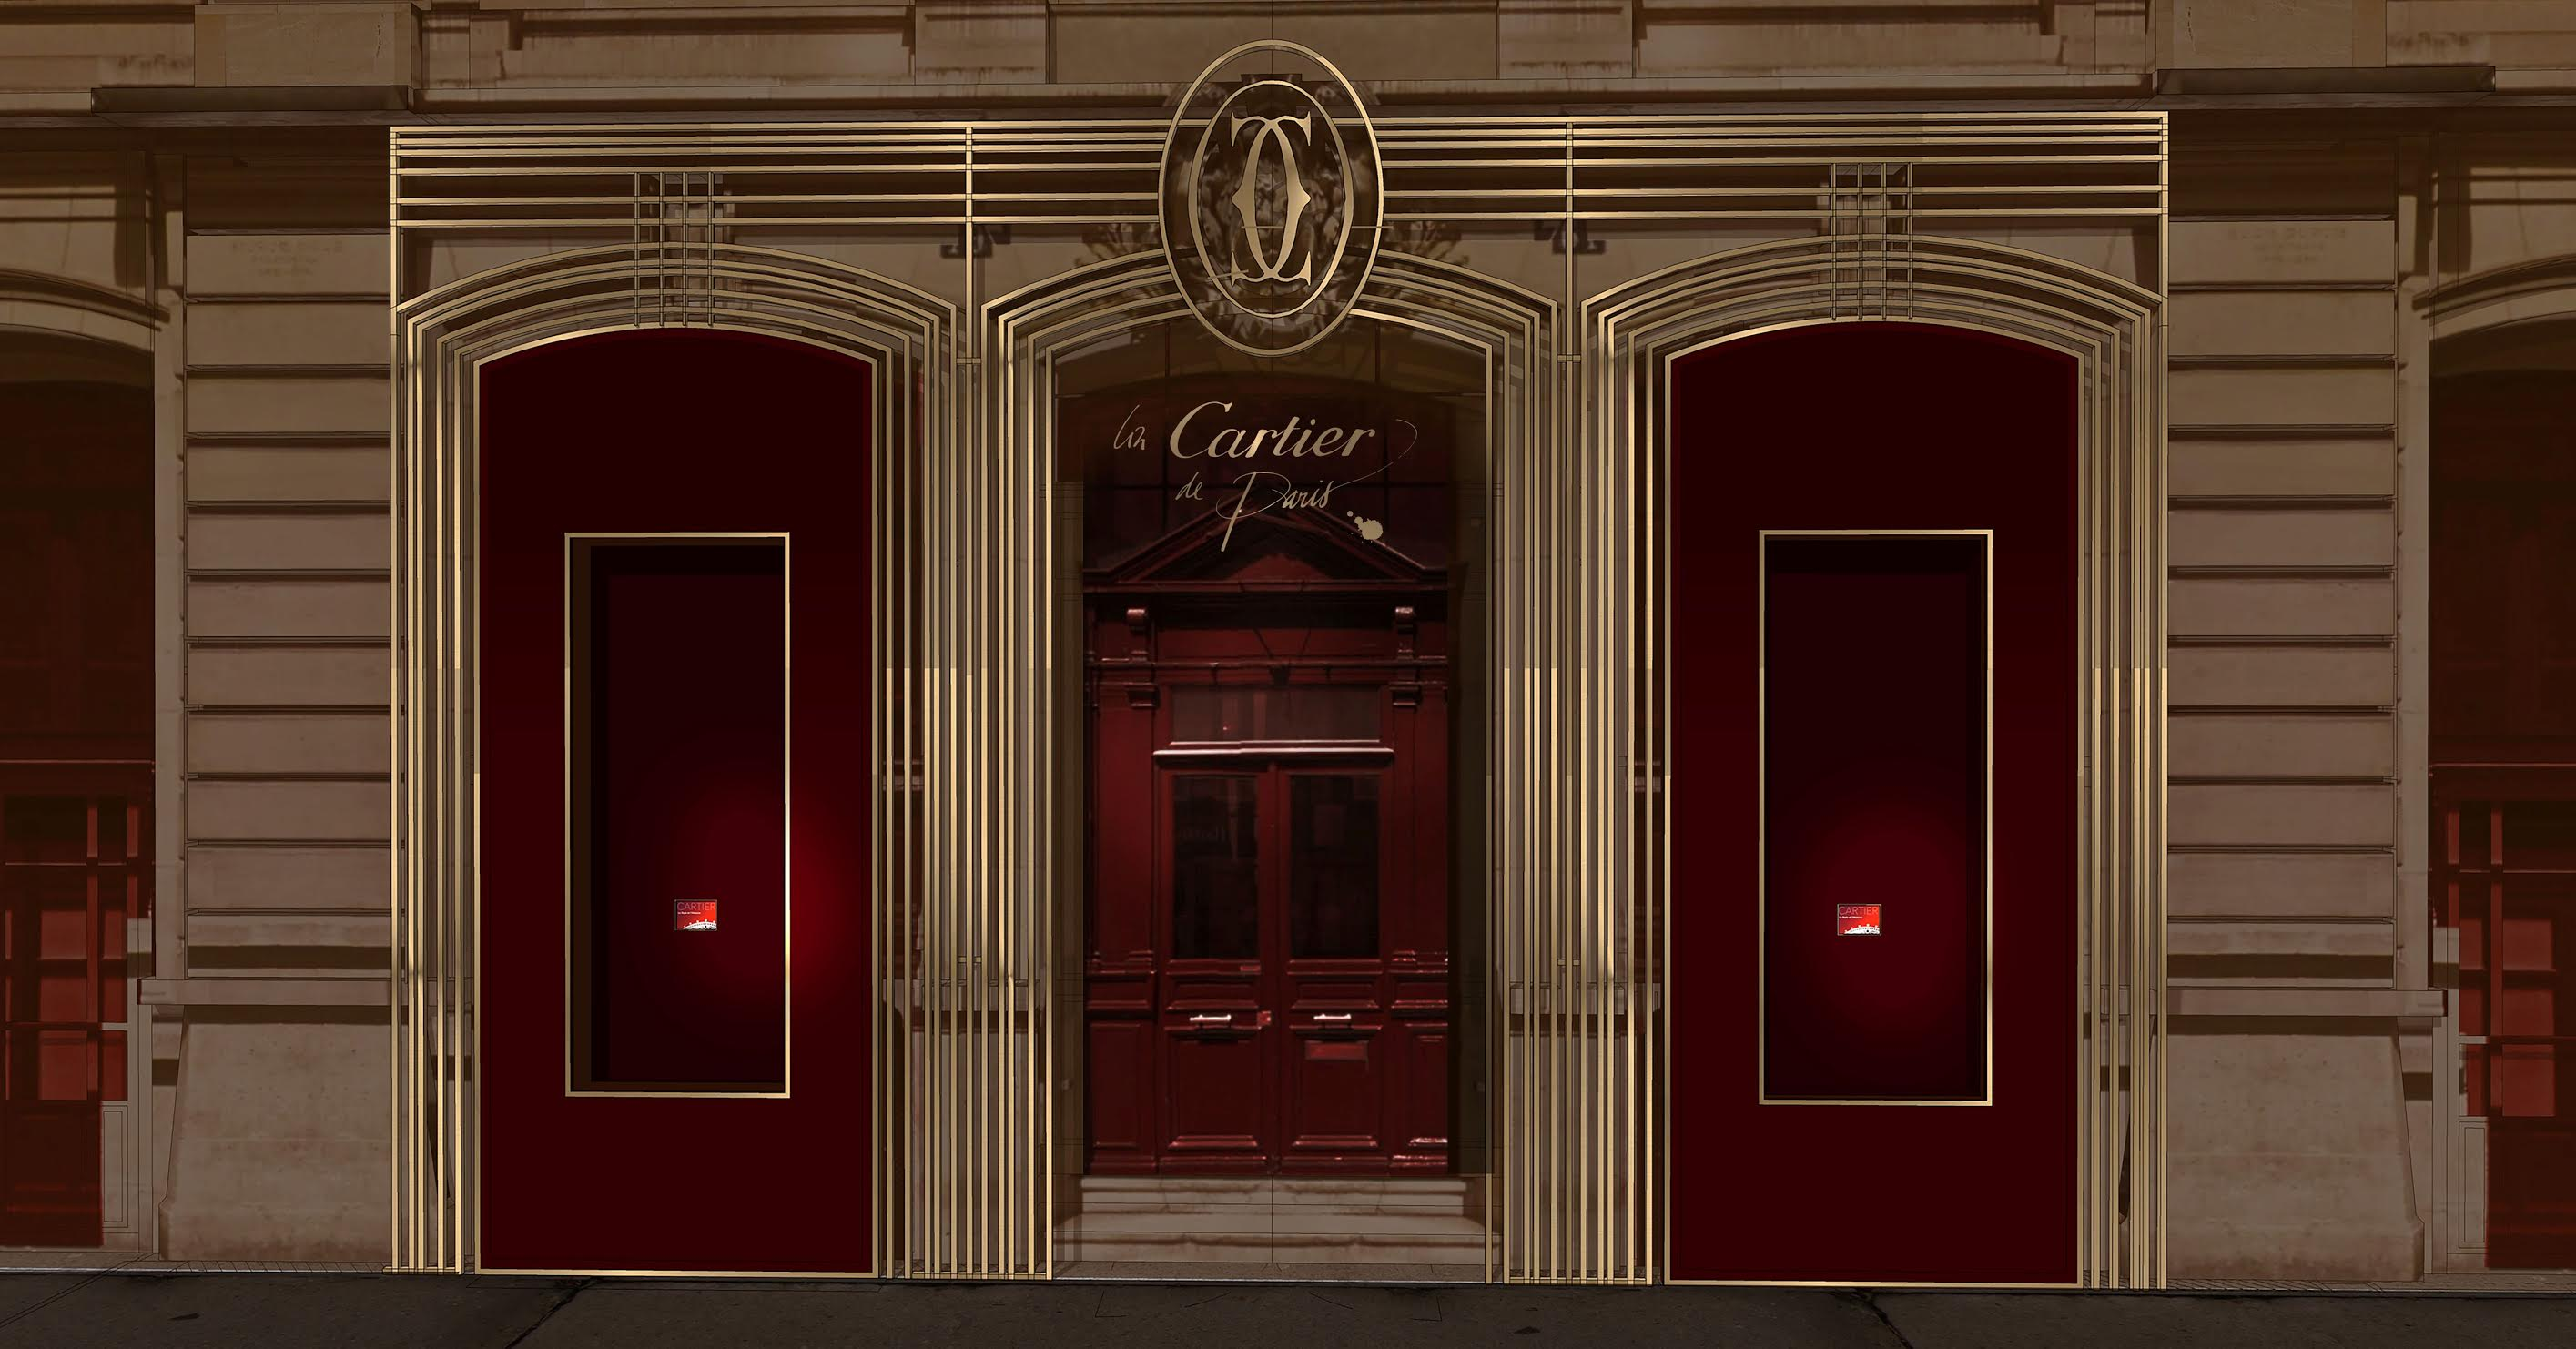 un cartier de paris